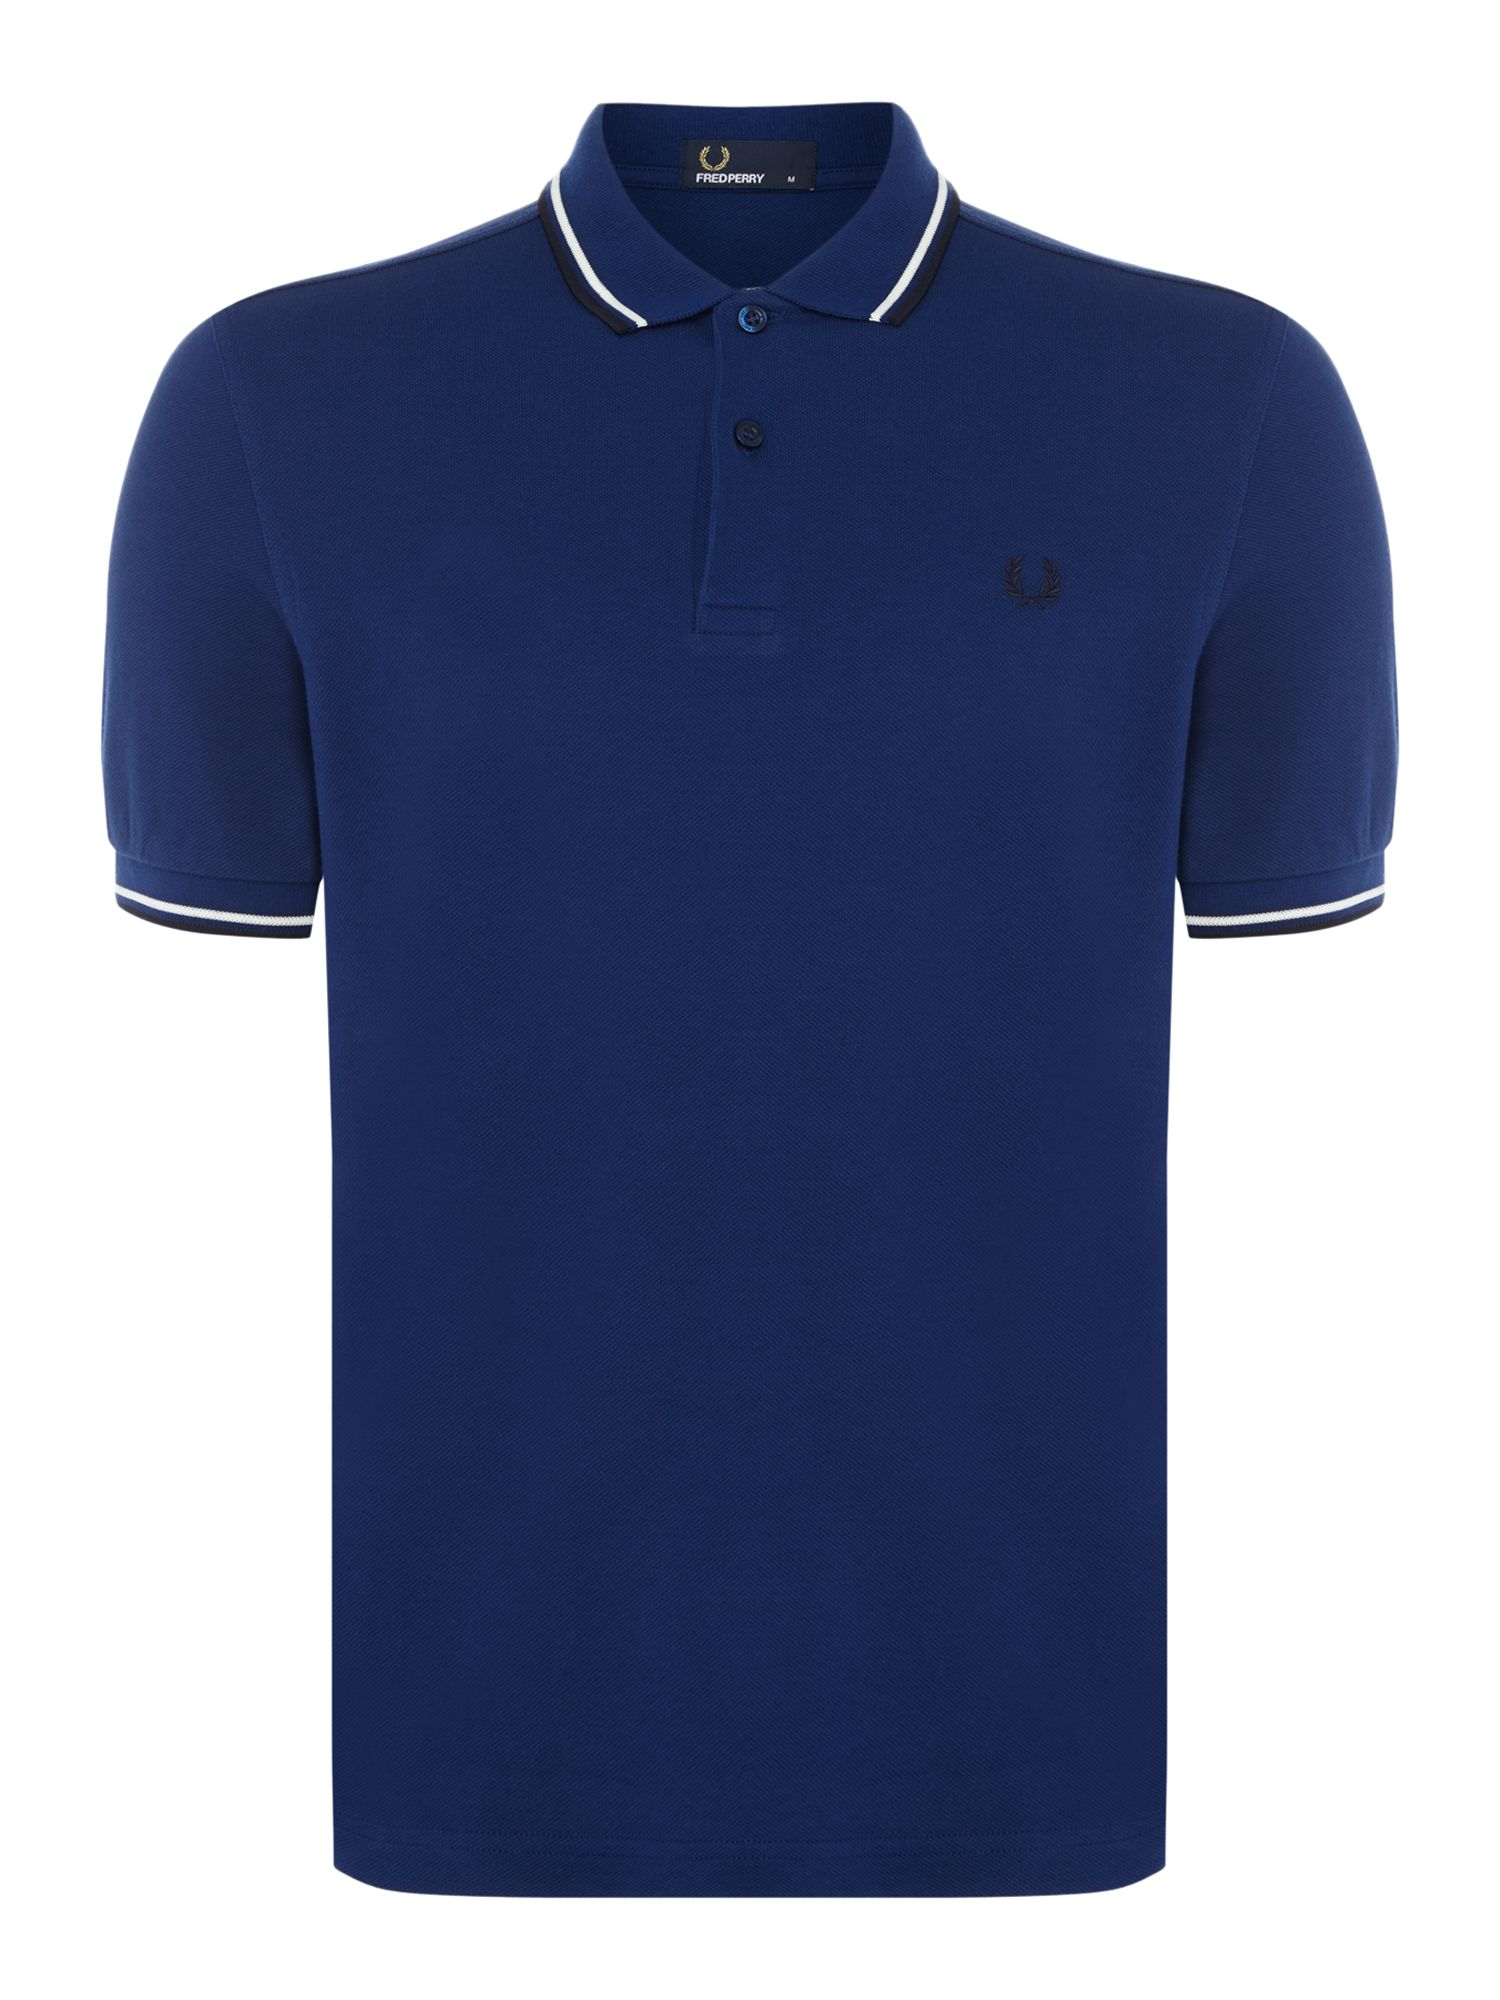 Men's Fred Perry Plain Twin Tipped Polo Shirt, Royal